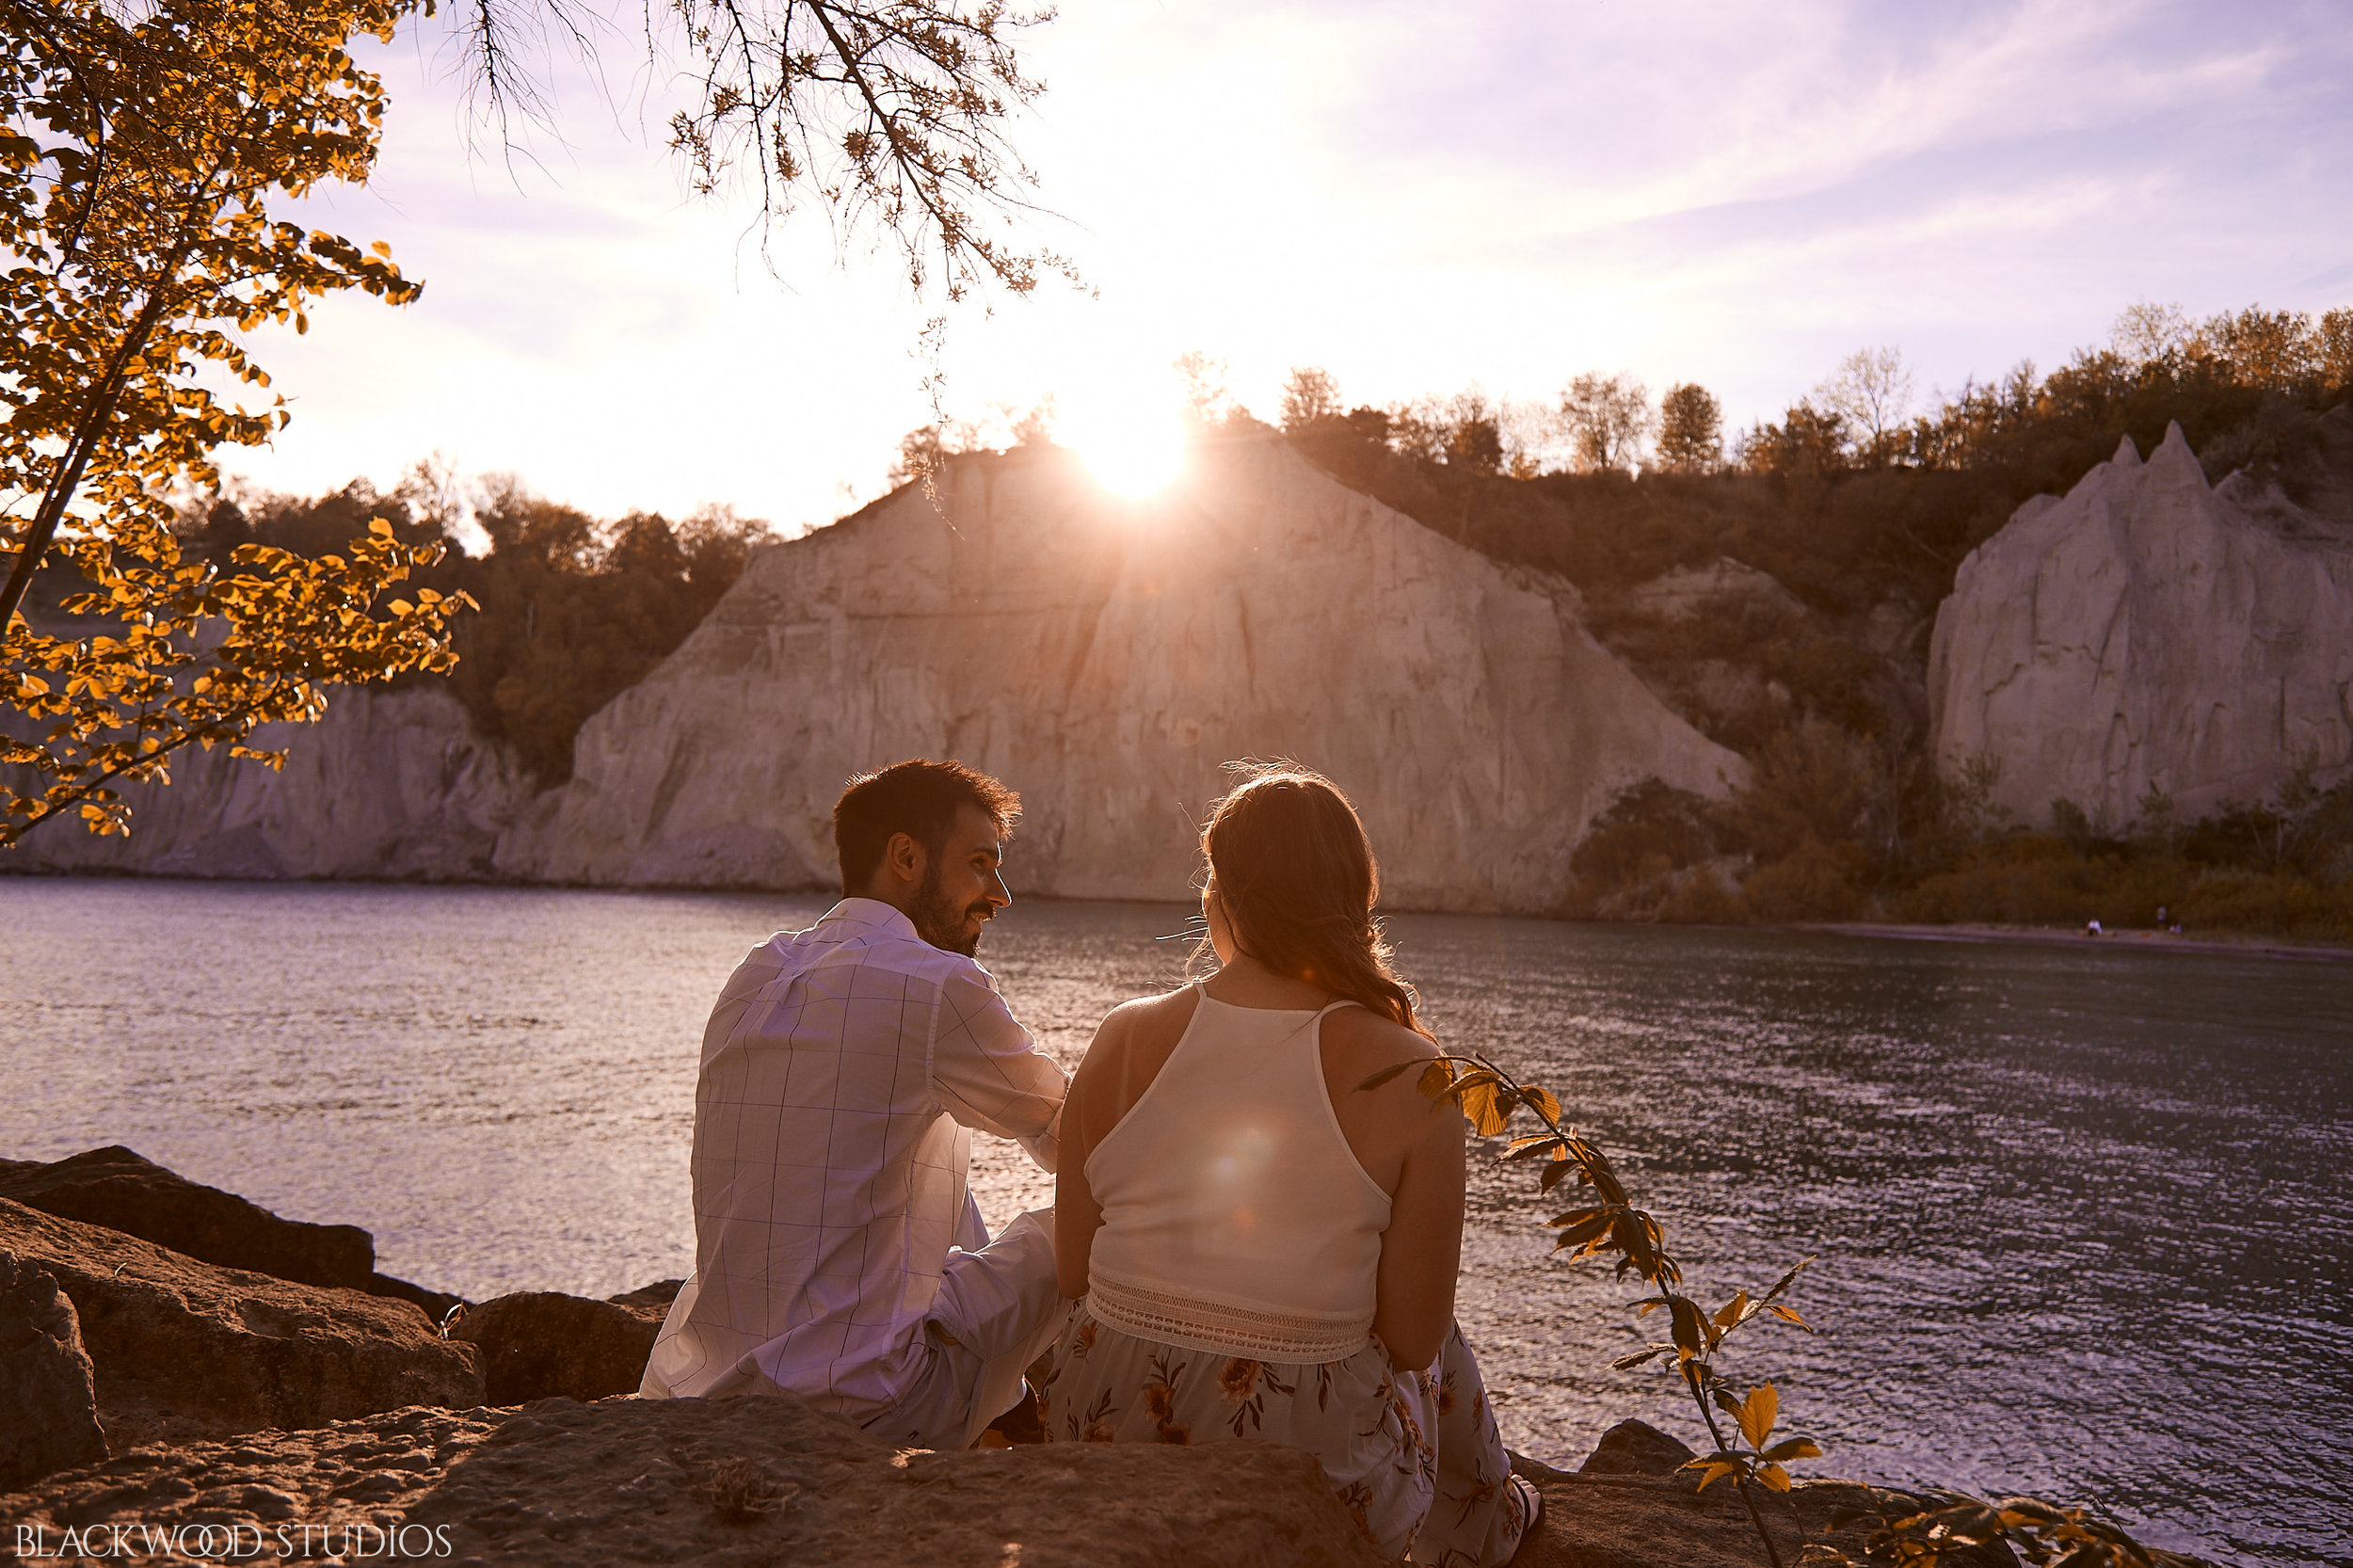 Blackwood-Studios-Photography-20190608193319-Brianna-Bryan-Engagement-Scarbourgh-Bluffs-Park-Ontario-Canada.jpg